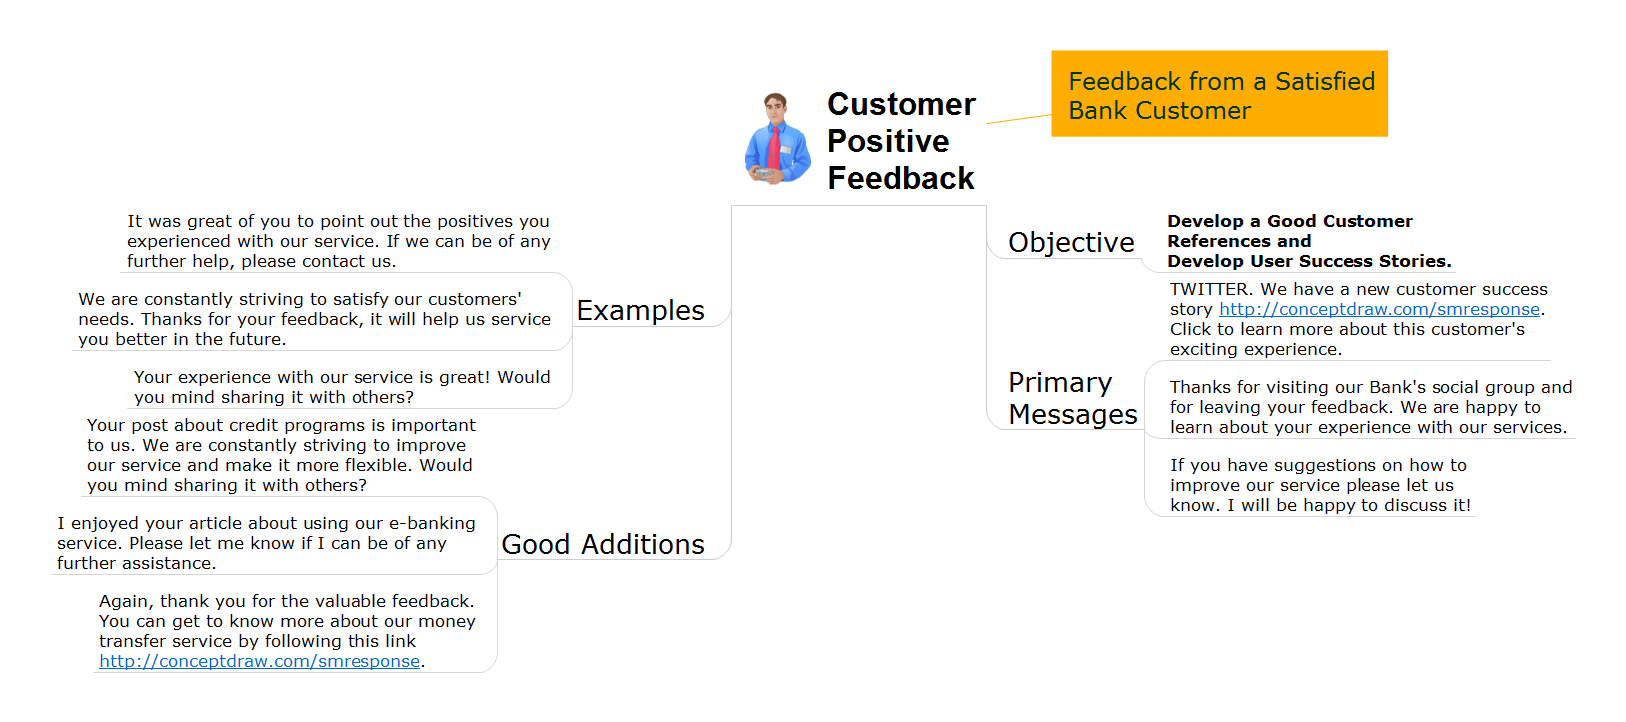 Action mind map - Bank customer positive feedback